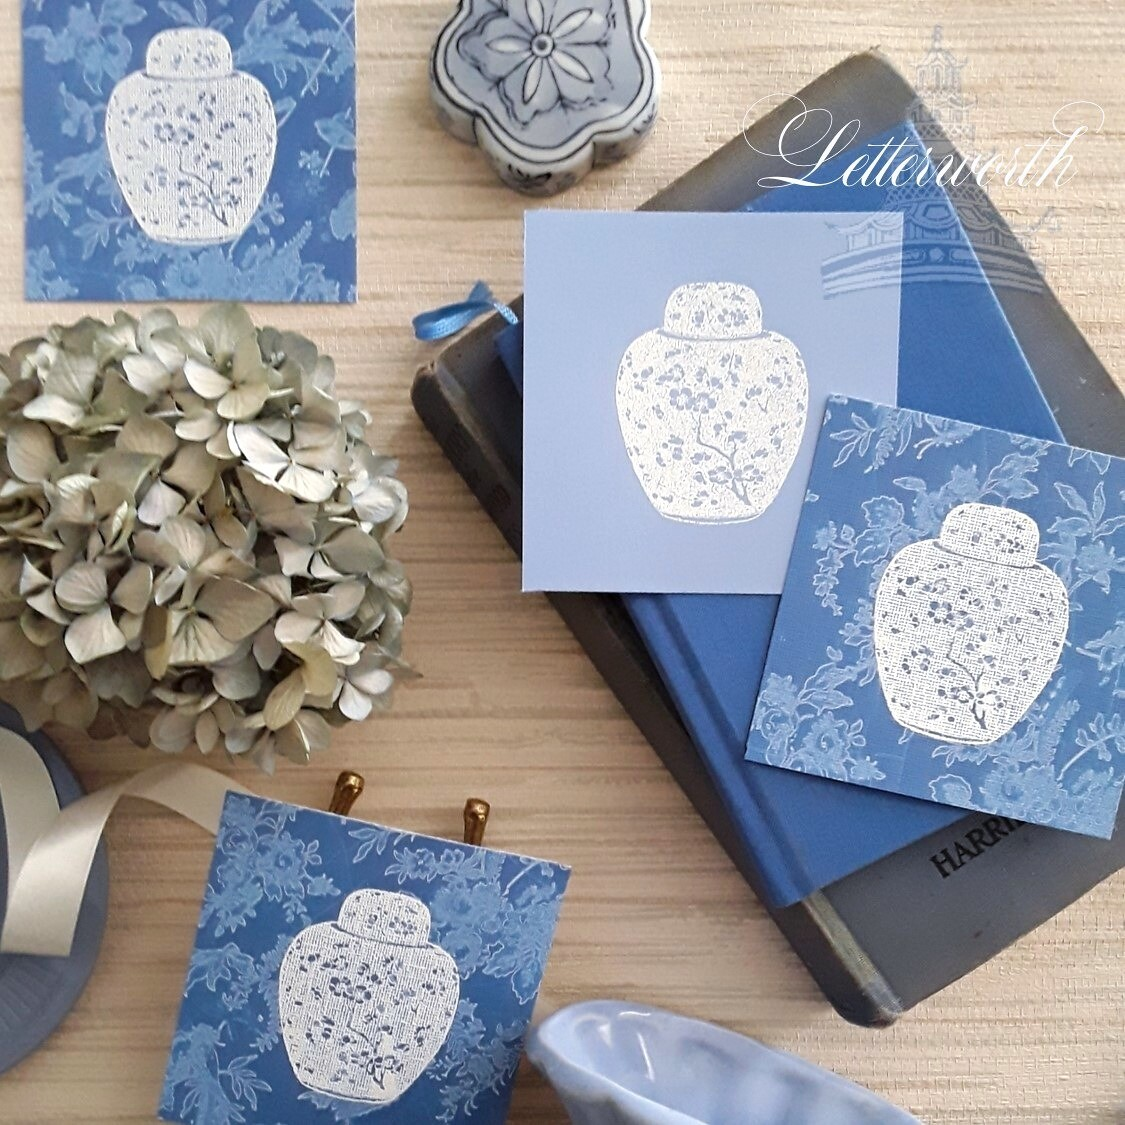 Hand-Embossed French Blue Prunus Blossom Enclosure Cards by Letterworth (Set of 12)